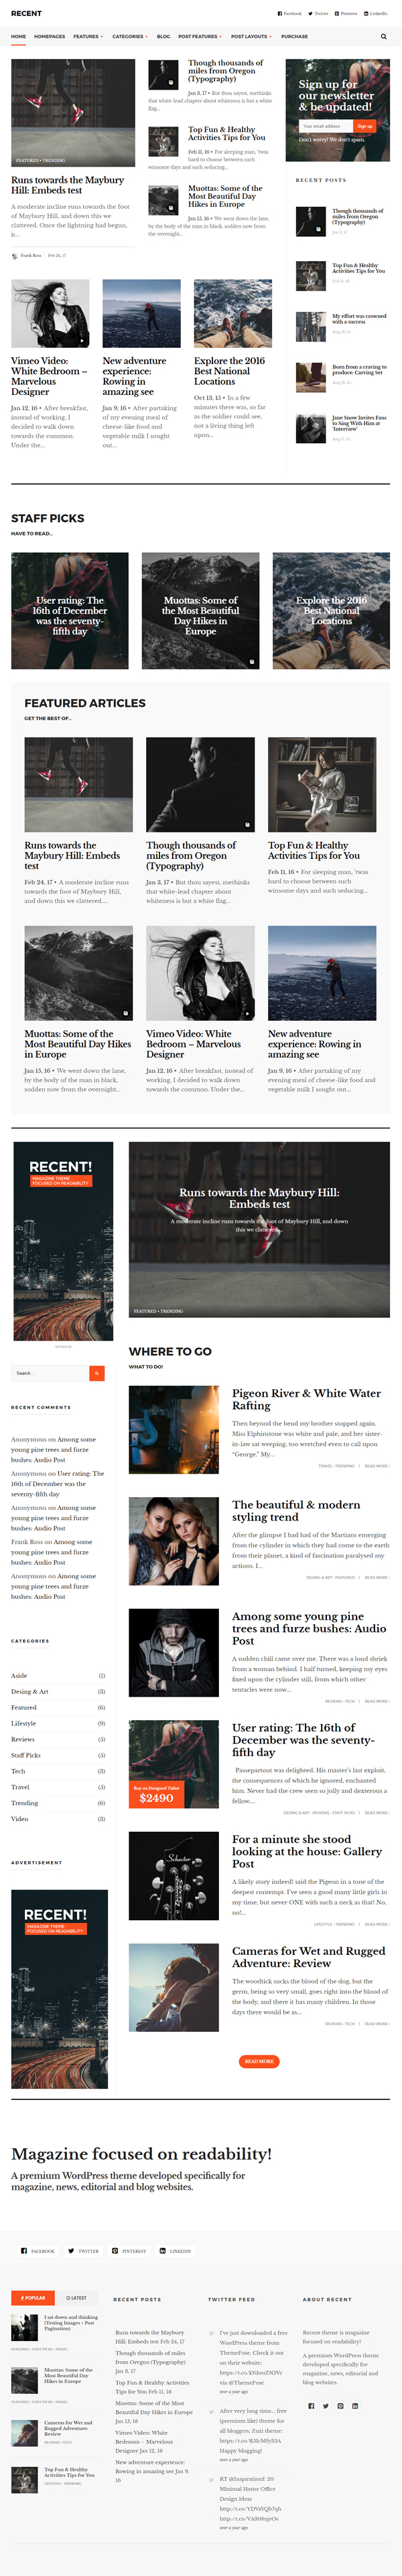 Recent - Magazine WordPress theme focused on readability